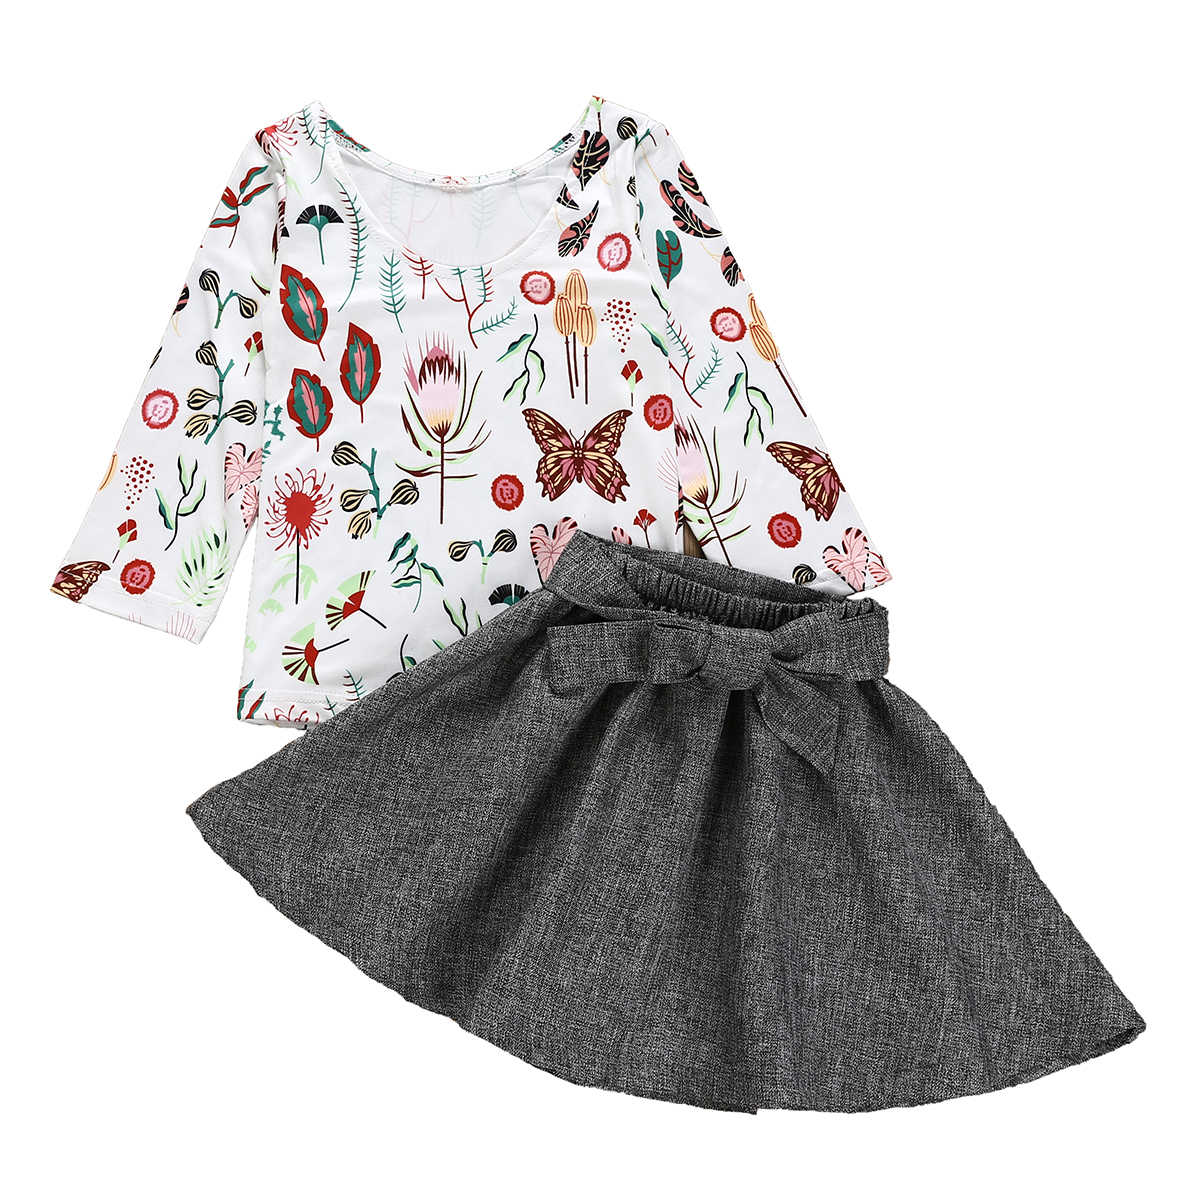 0475a21575871 Cute Flower Kid Baby Girl Clothing Set Children's Clothes Party Outfits  Long Sleeve T-shirt